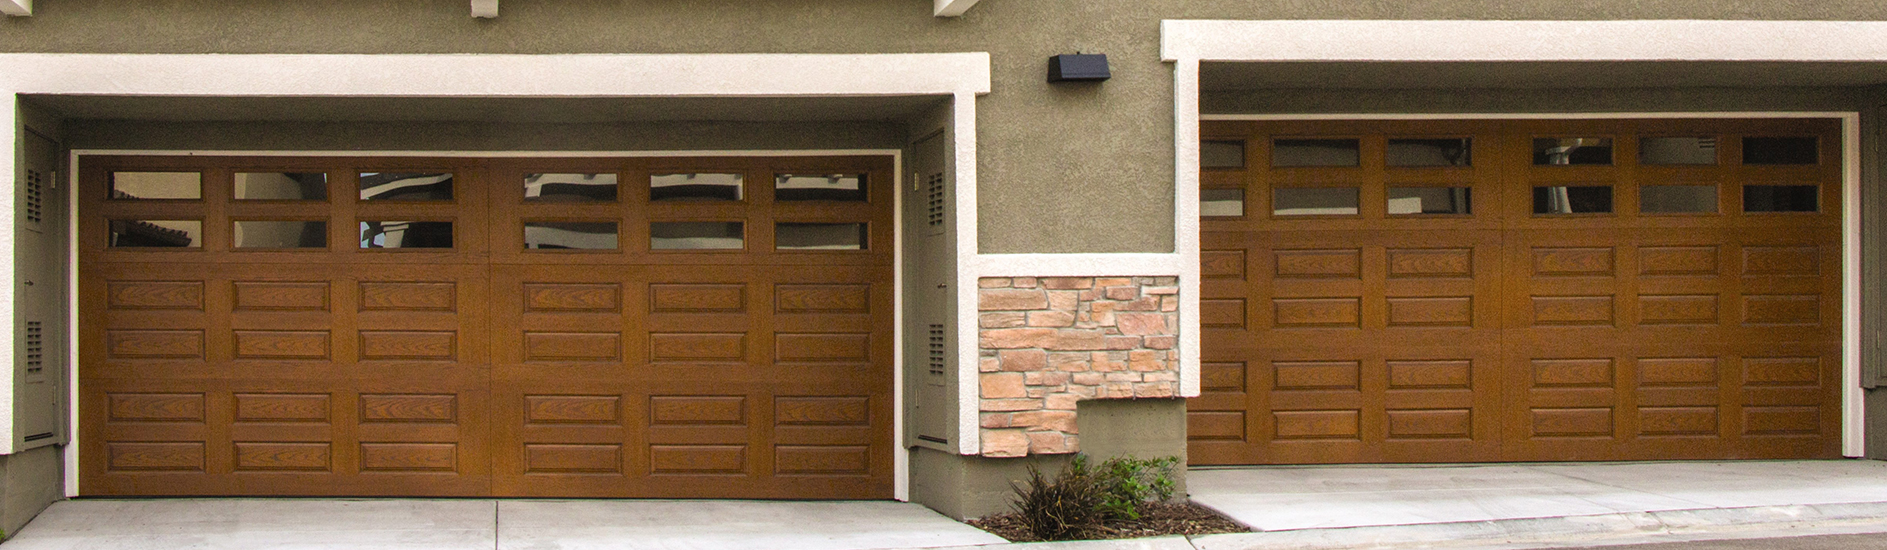 premiere category az door doors repair garage single archives fiberglass living arizona mesa